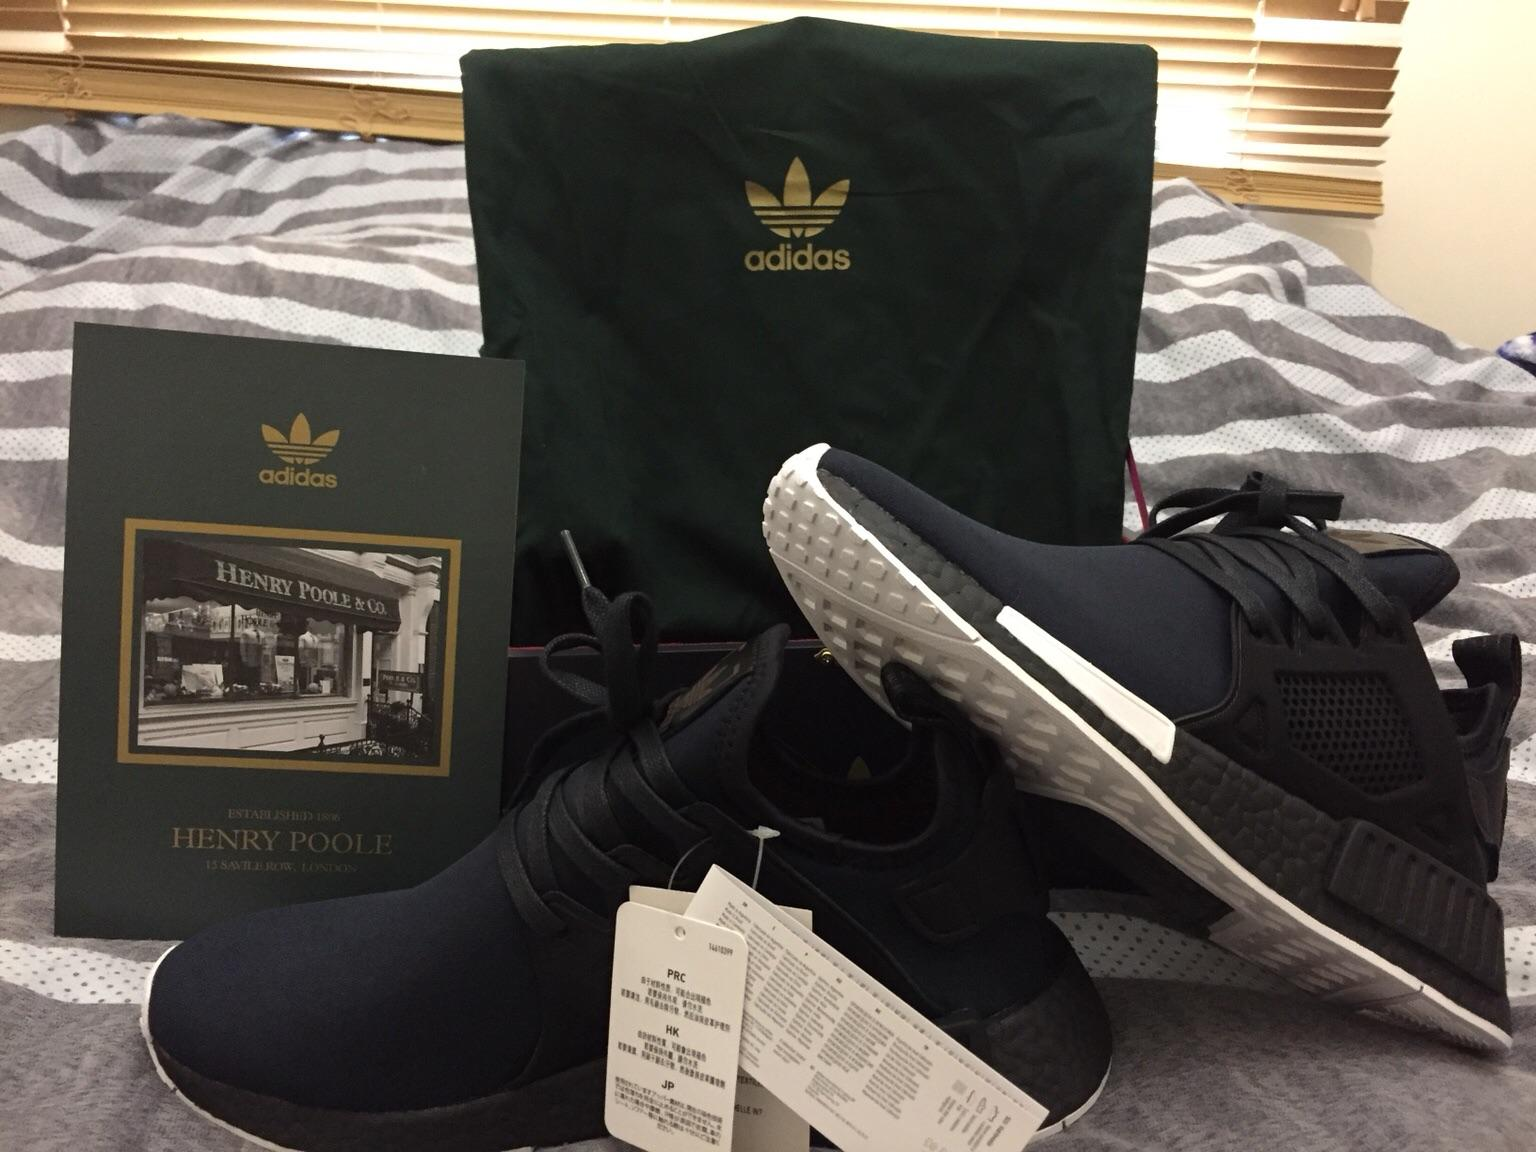 separation shoes 6fa20 1295a Adidas x size? x Henry Poole NMD XR1 8-9UK